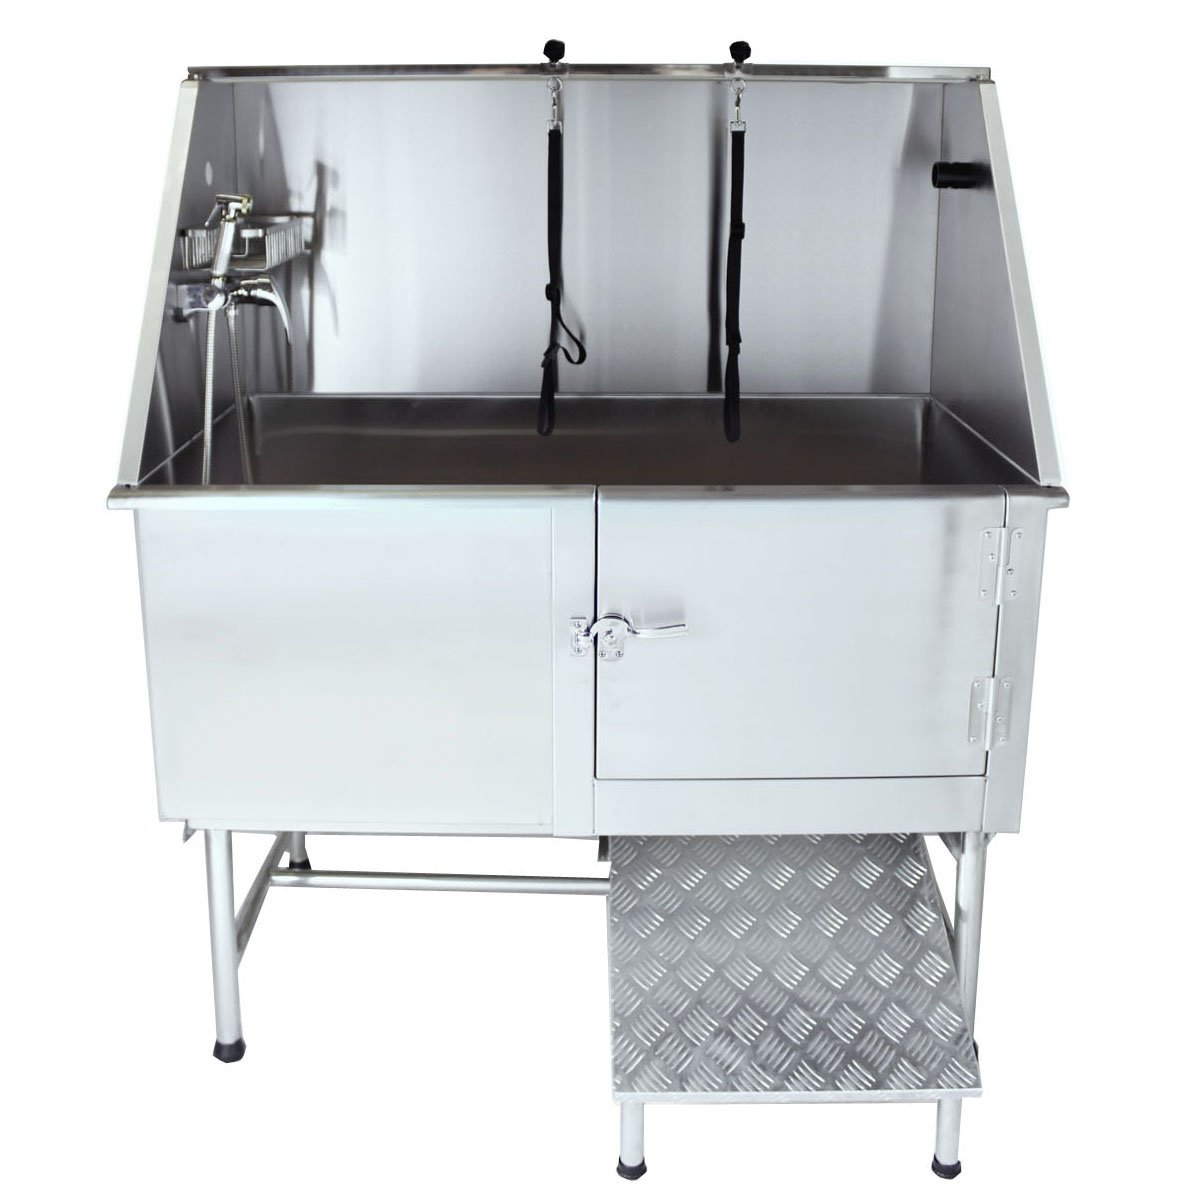 Flying Pig Grooming 62'' Stainless Steel Pet Dog Bath Tub with Faucet (Right door/Left Drain), 62 x 27 x 58''